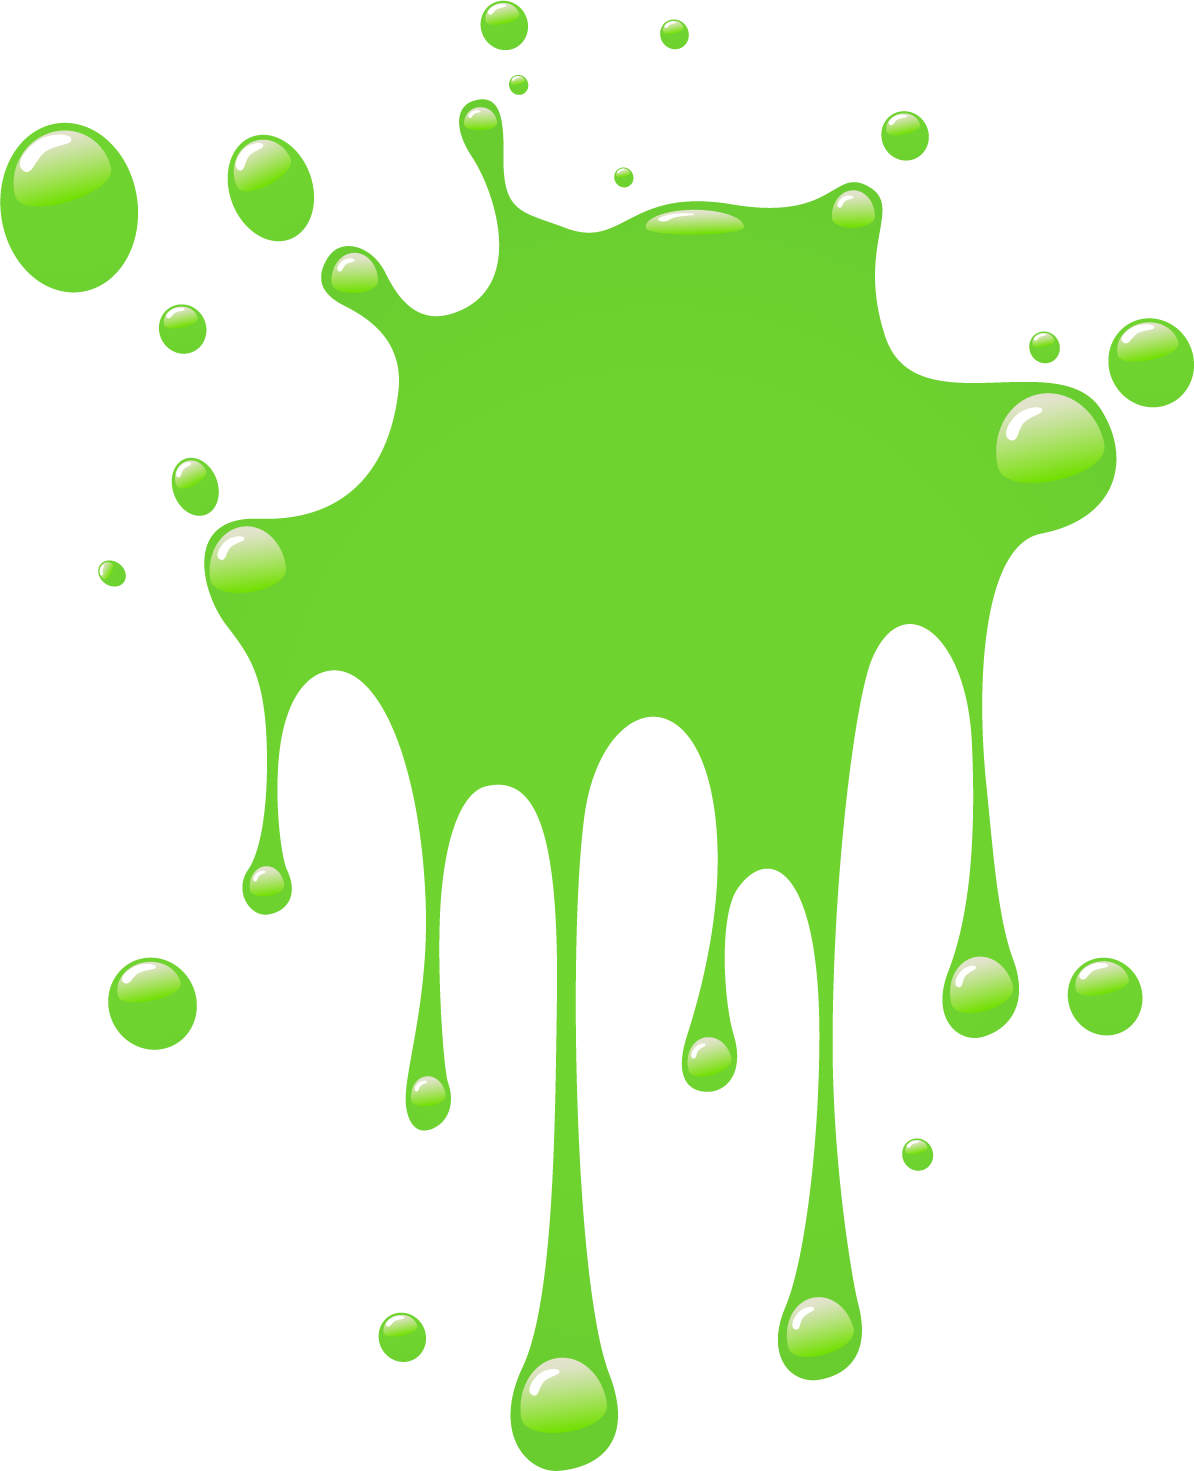 Green Paint Splatter Clipart Clipart Suggest